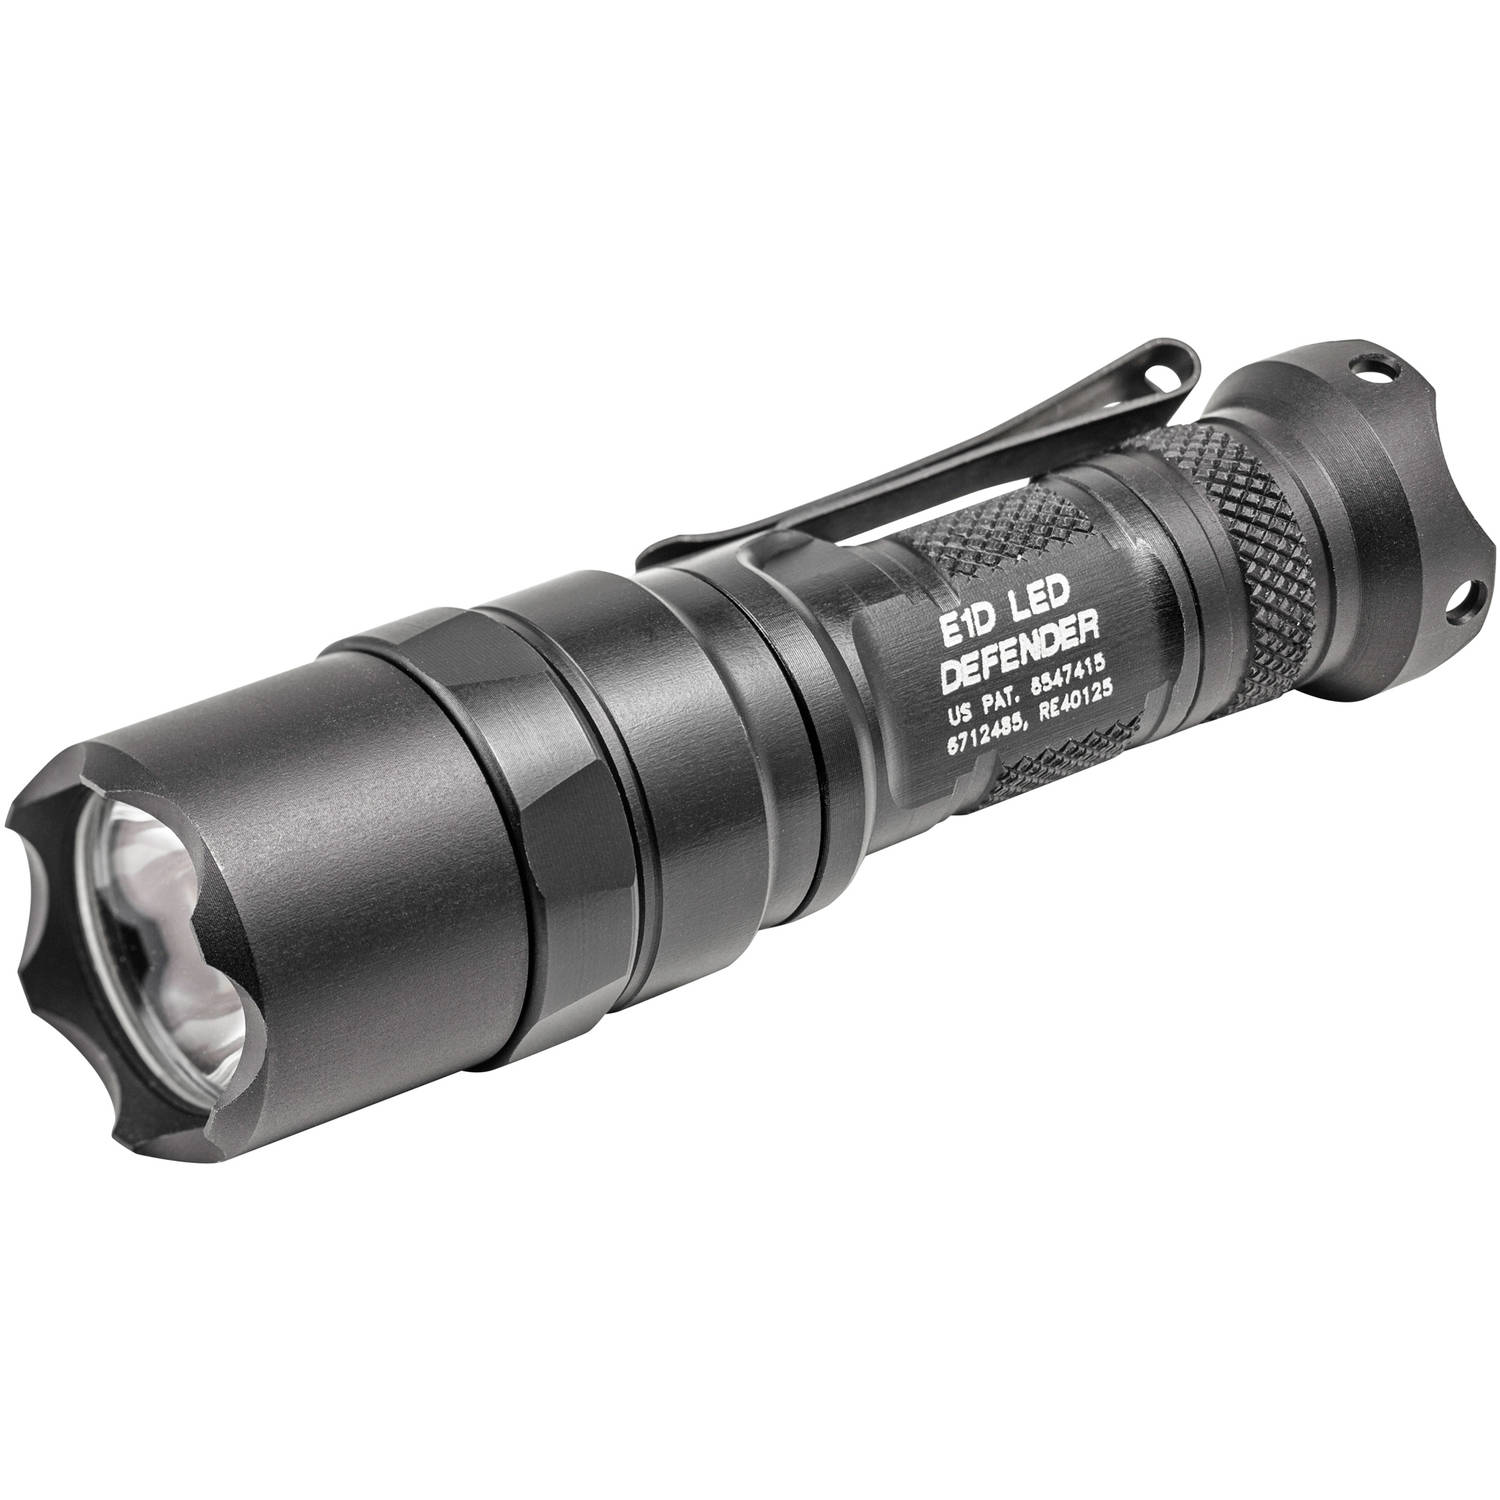 Surefire E1D LED Defender Flashlight, Dual-Output LED, 300/5 Lumens, Constant-On Click-Type Tailcap Switch, Black